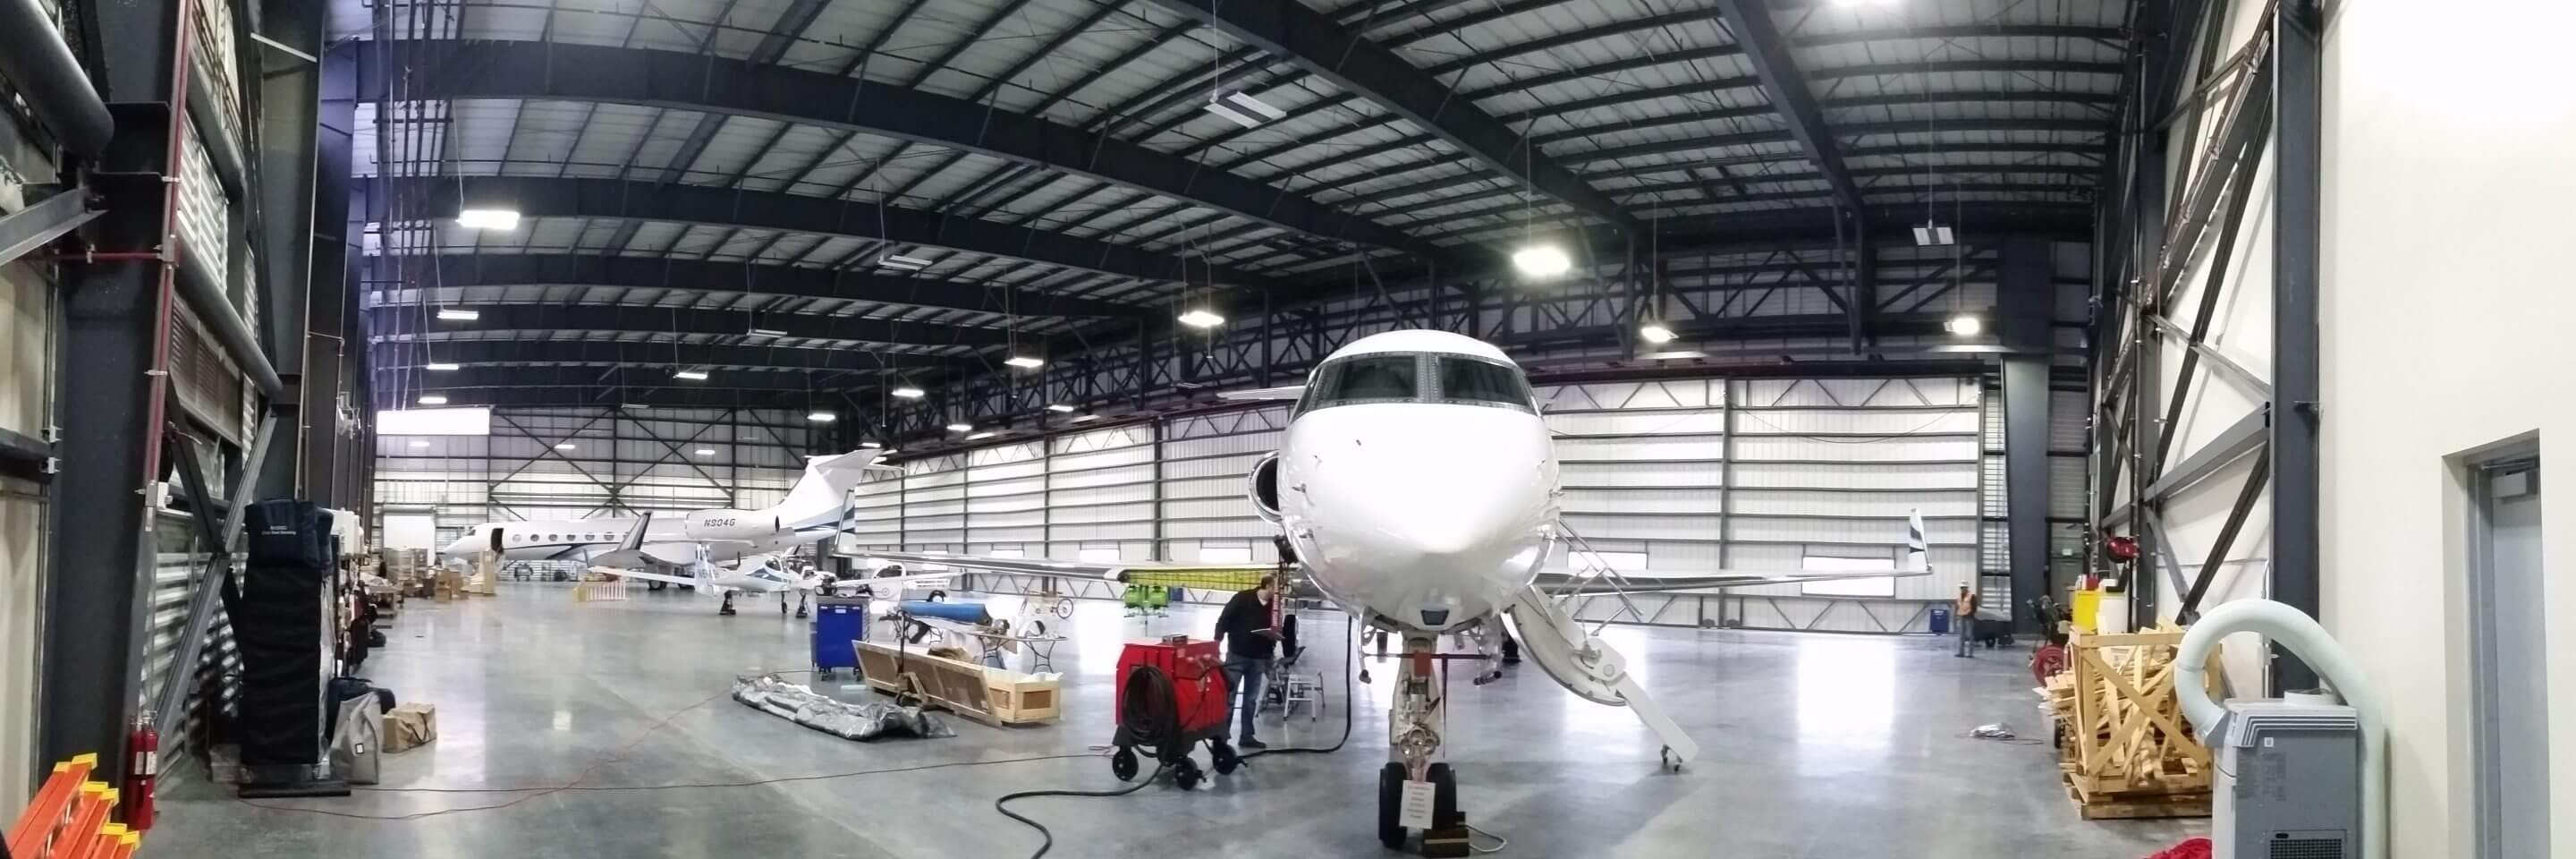 Signature Flight / Google Hangar